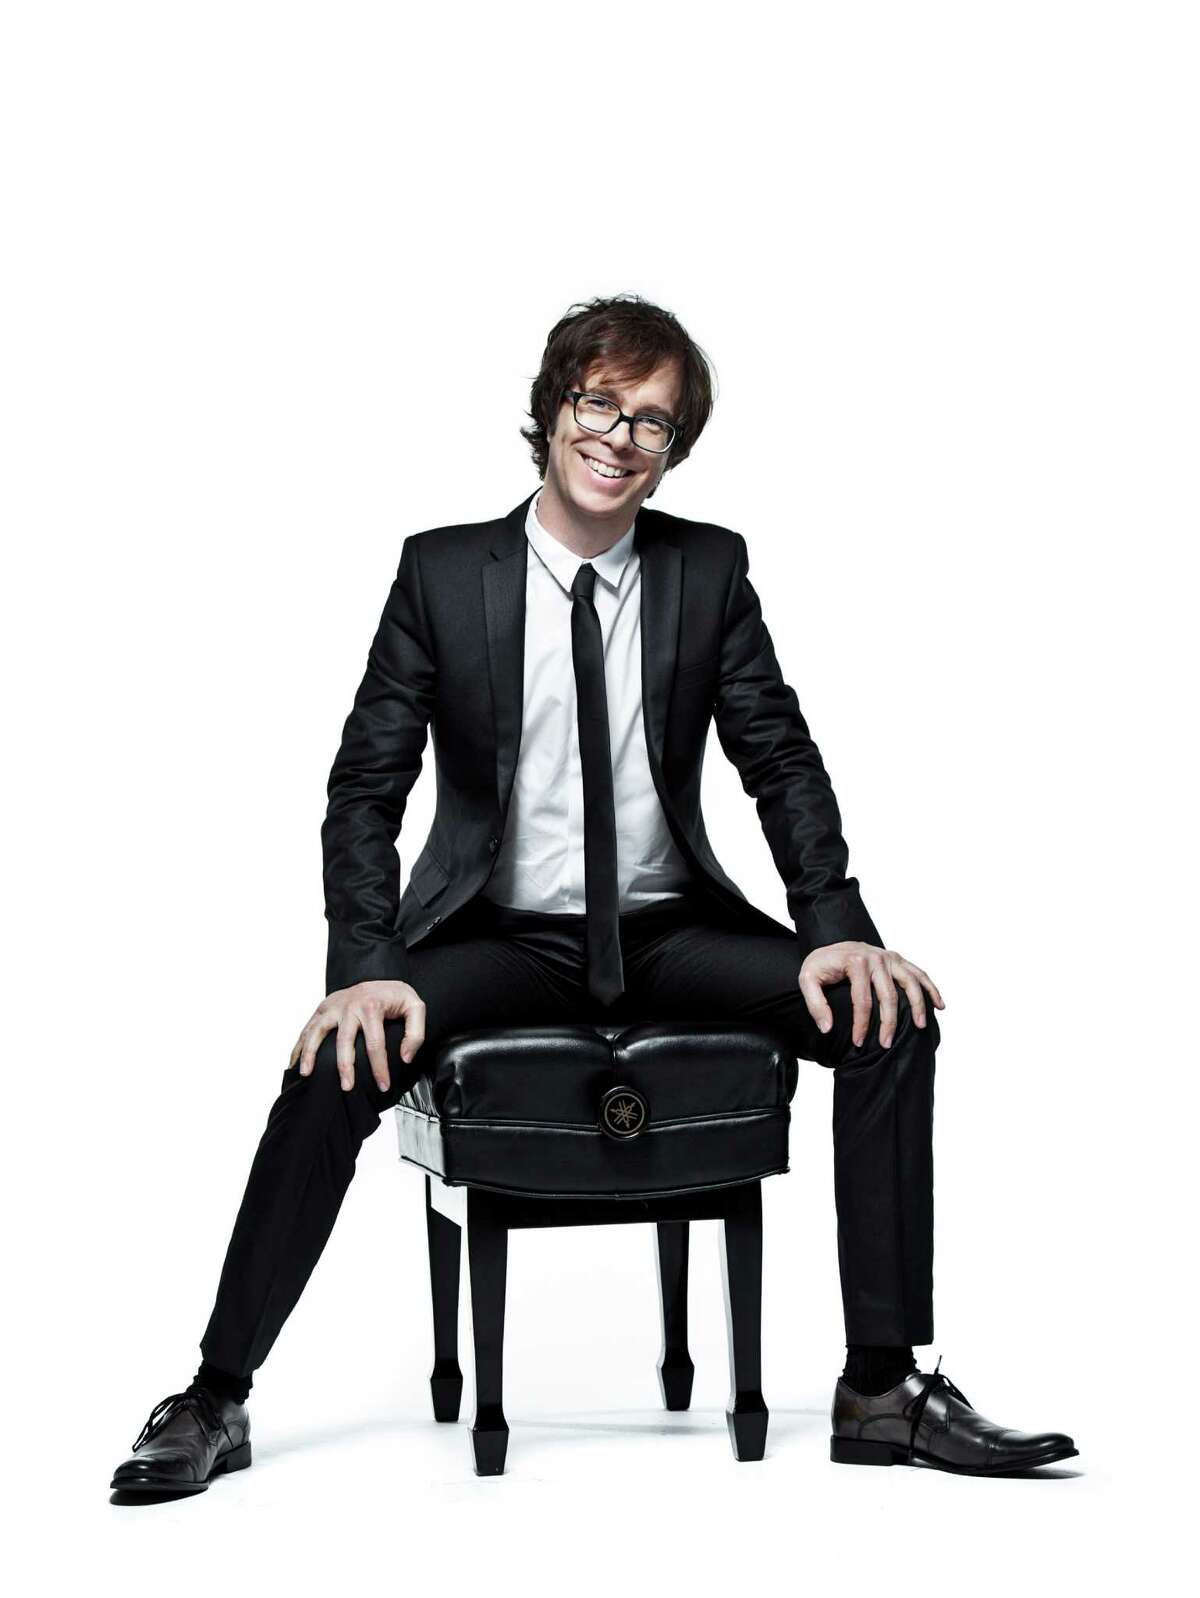 Singer-songwriter Ben Folds performs at House of Blues.